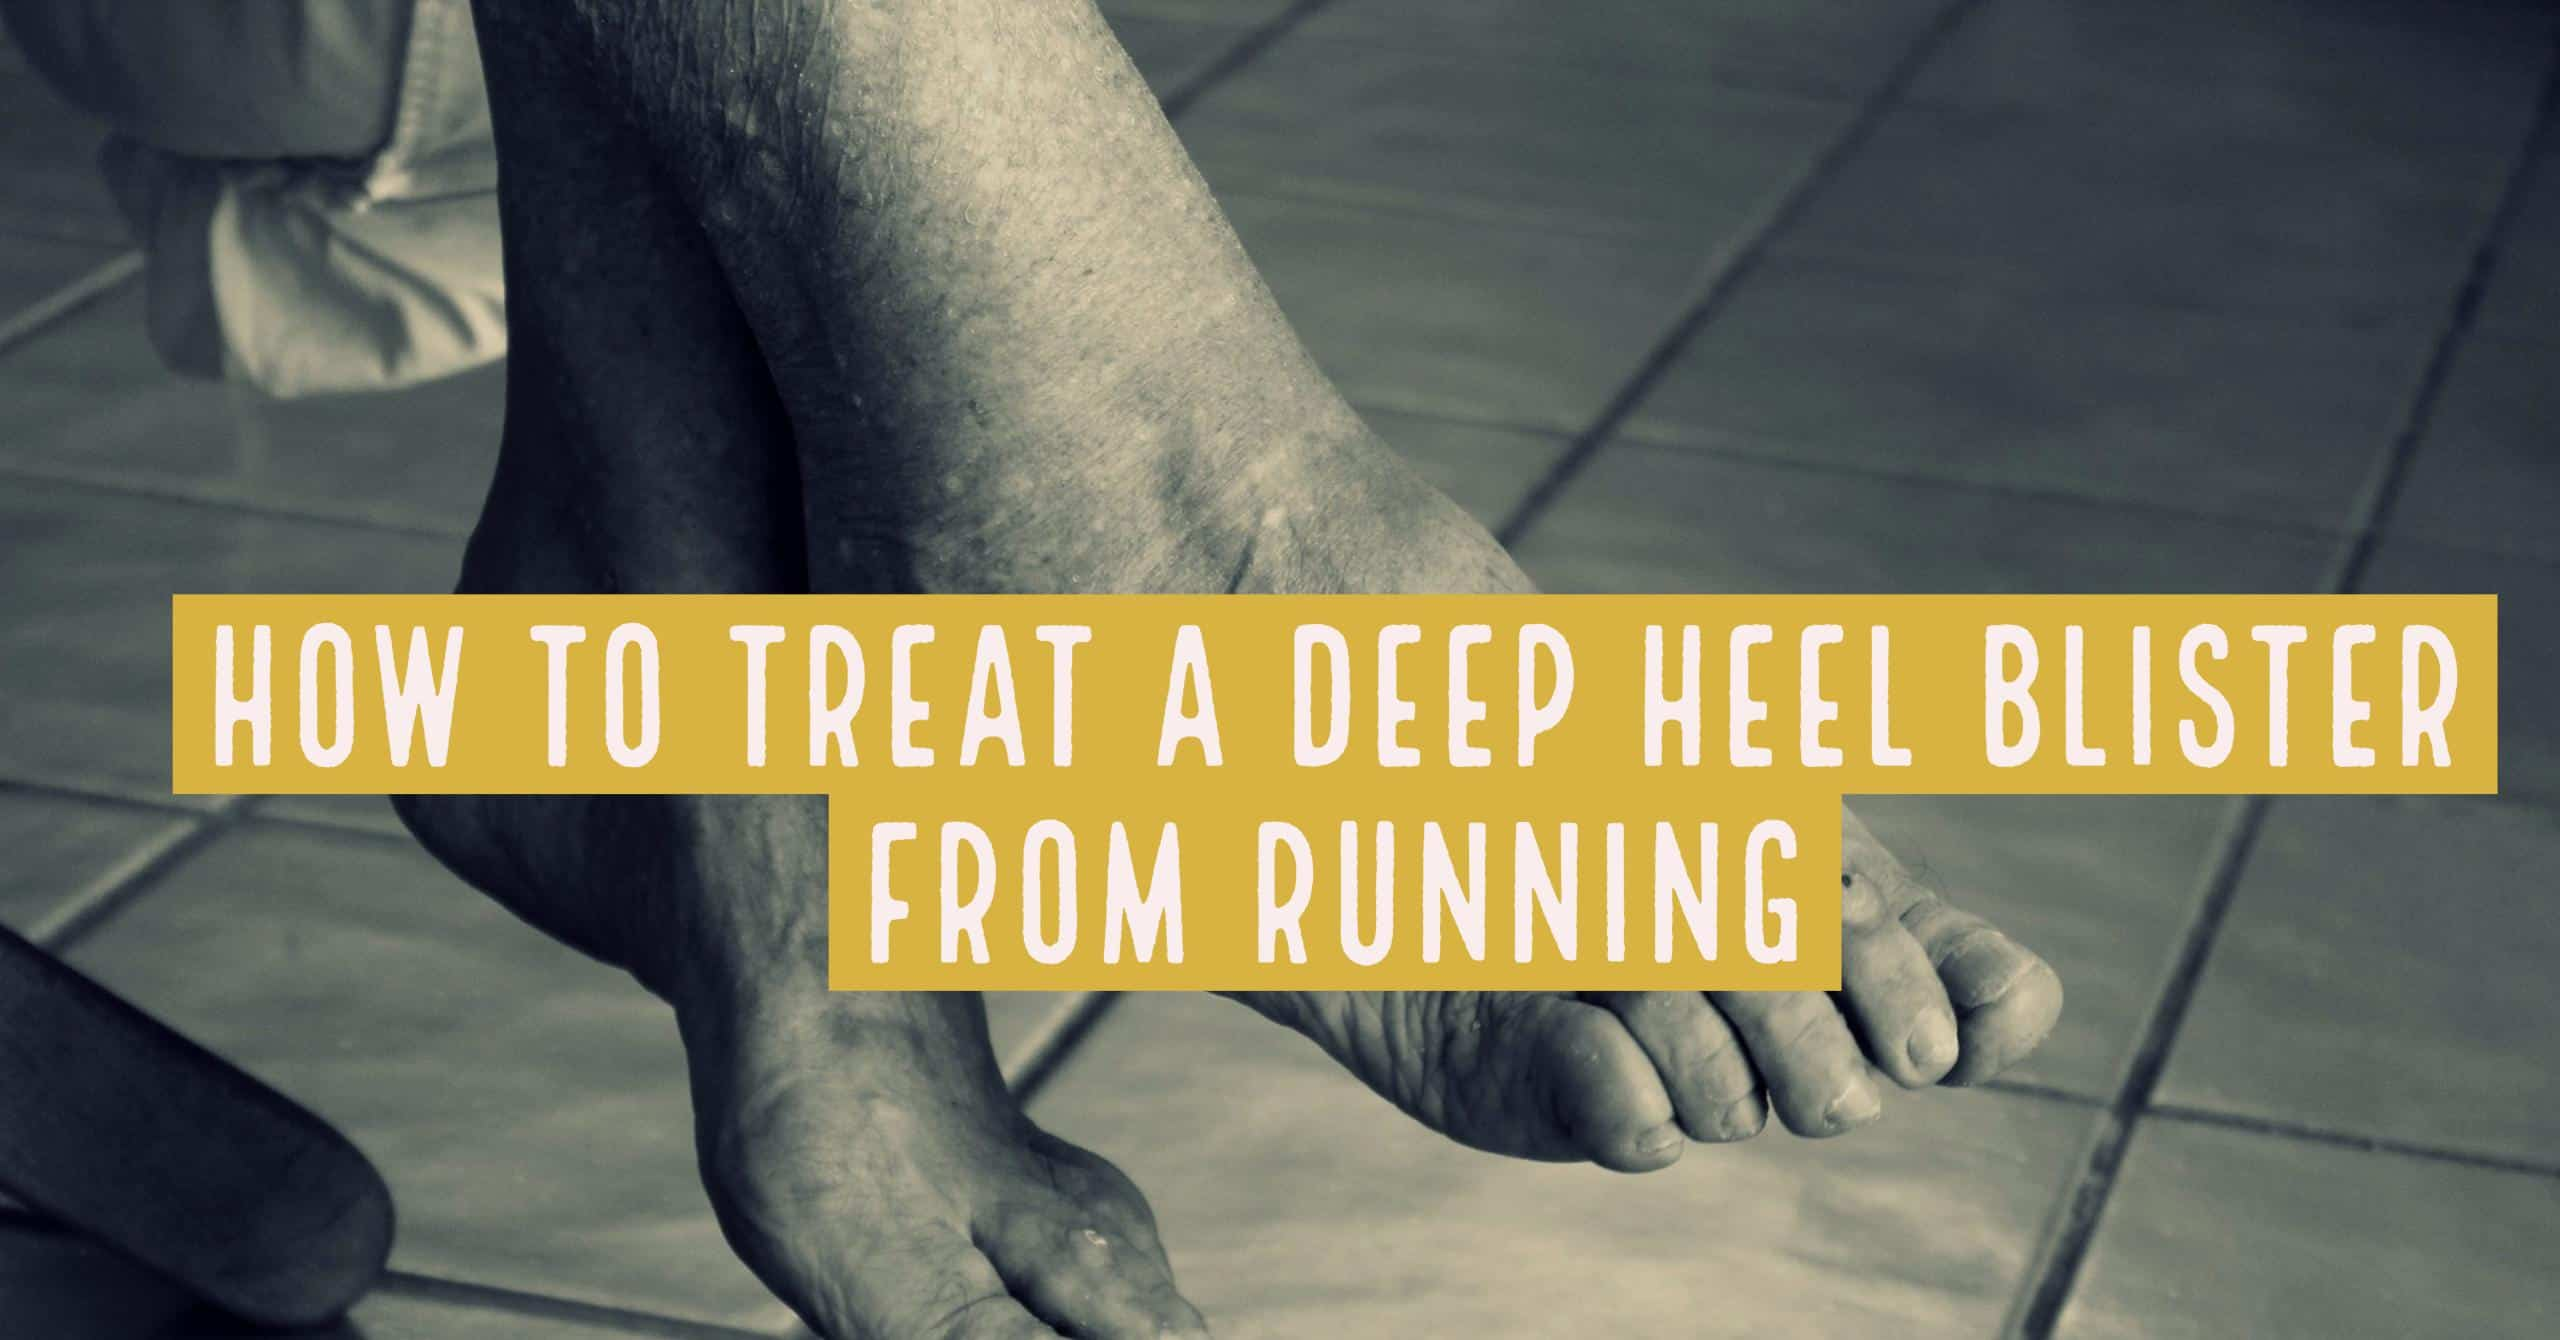 One of the worst mild injuries a runner can have is a deel heel blister. They can be formed by new shoes and bad socks. We go through how to prevention and treatment ways on a deep heel blister from running.